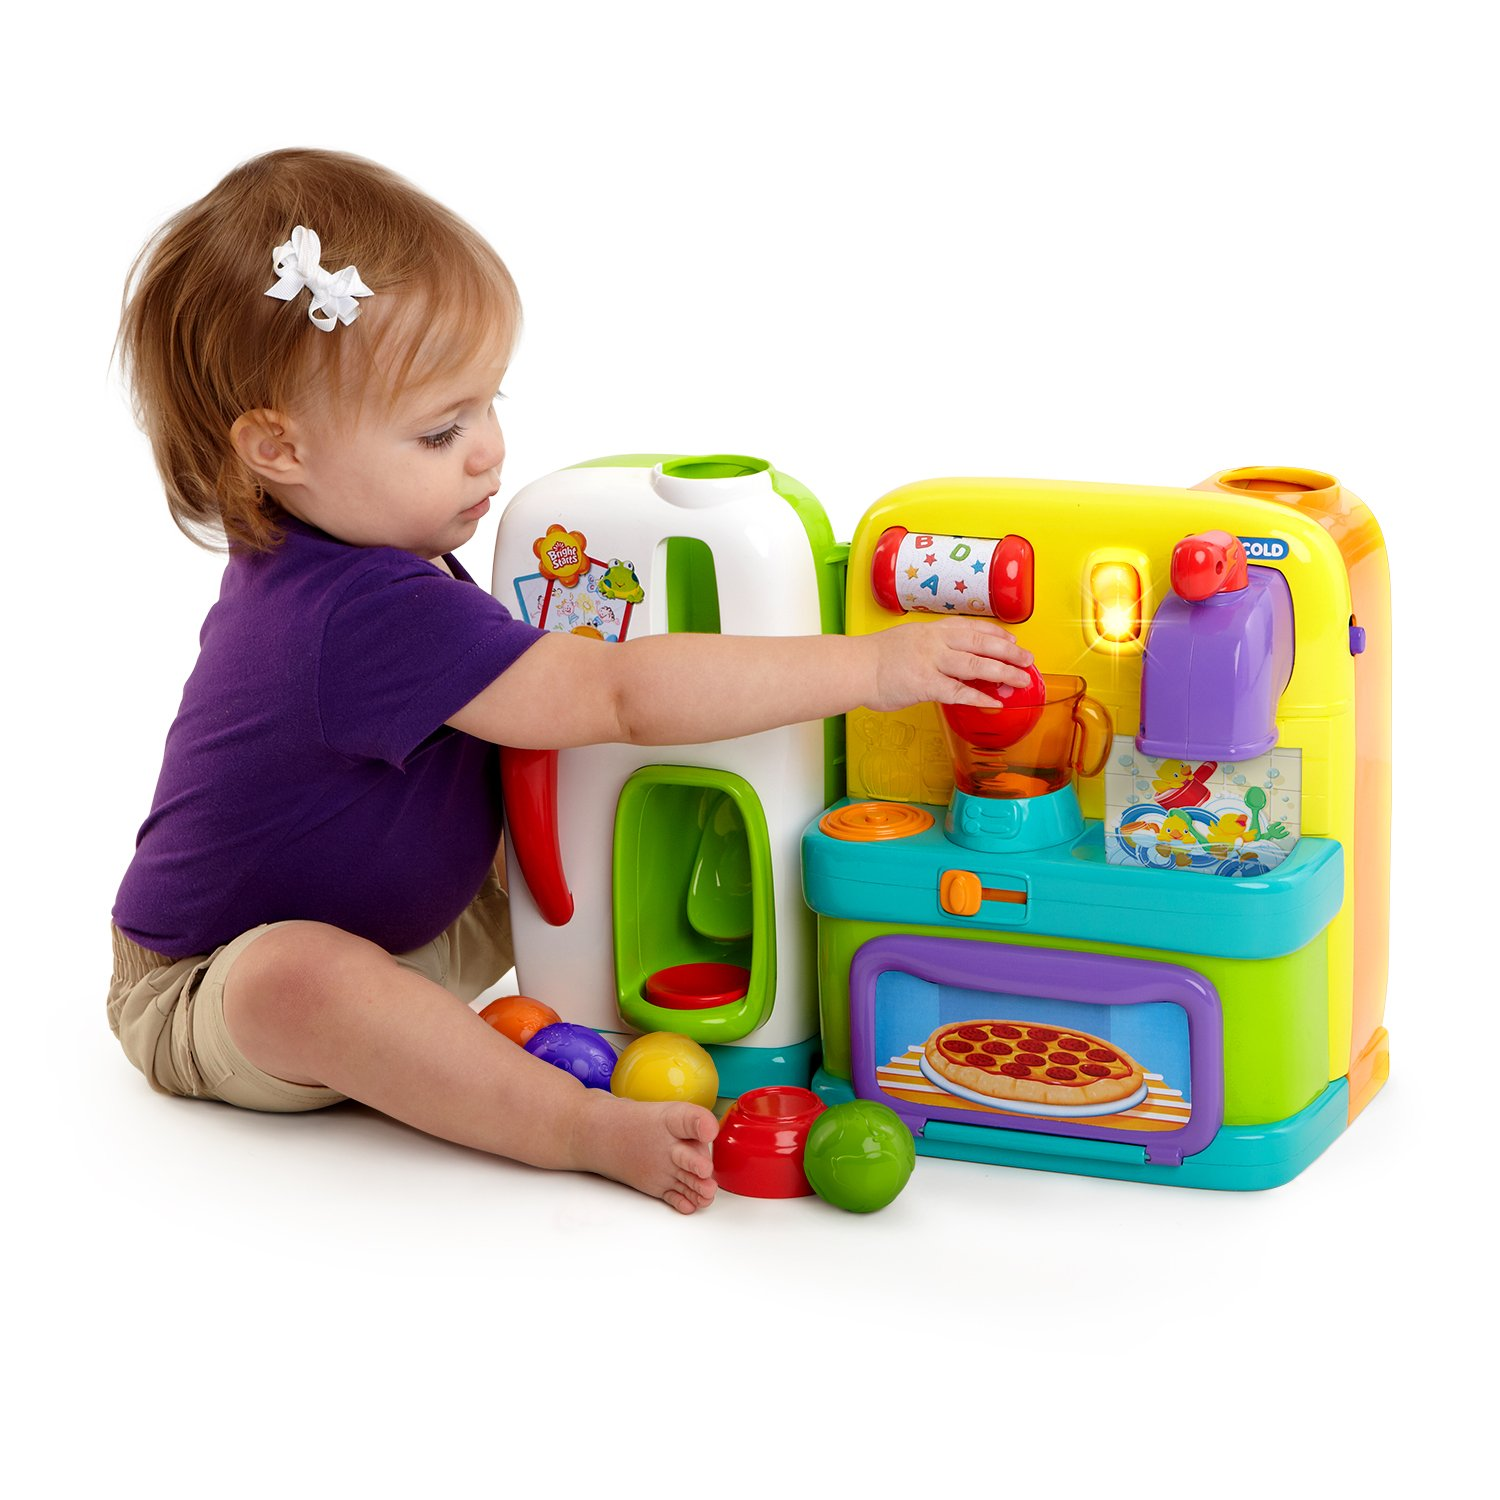 Top Toys For Girls Age 2 : Best christmas toys for year old girls